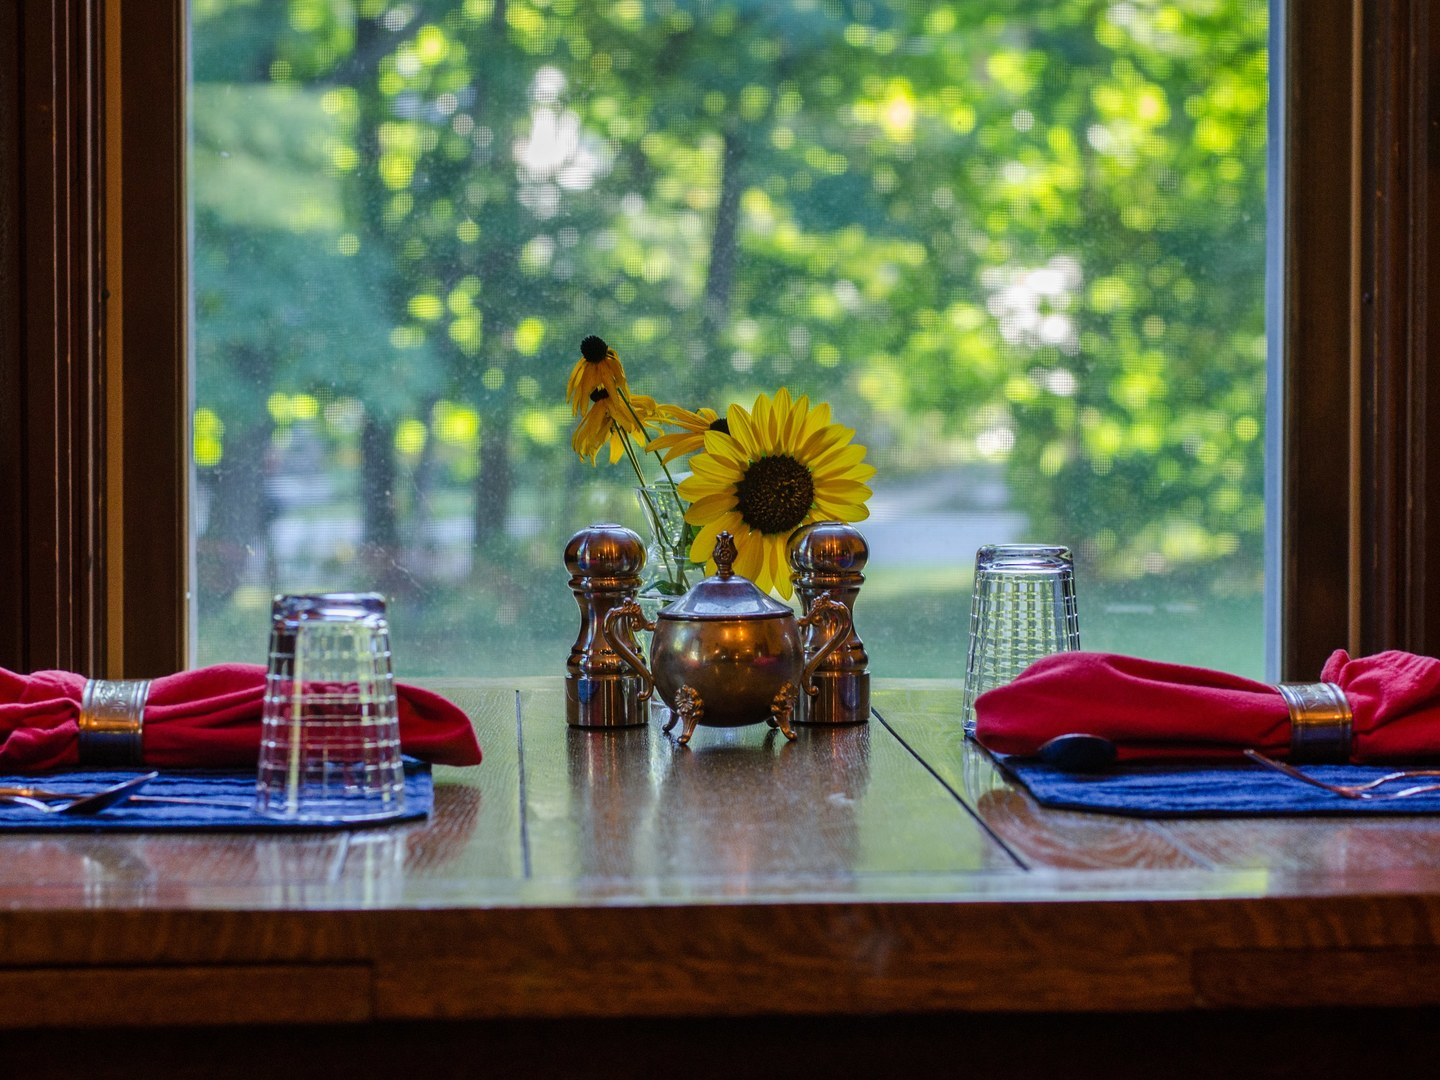 A vase of flowers on a table next to a window at Heart of the Village Inn, Modern Vermont Bed & Breakfast.